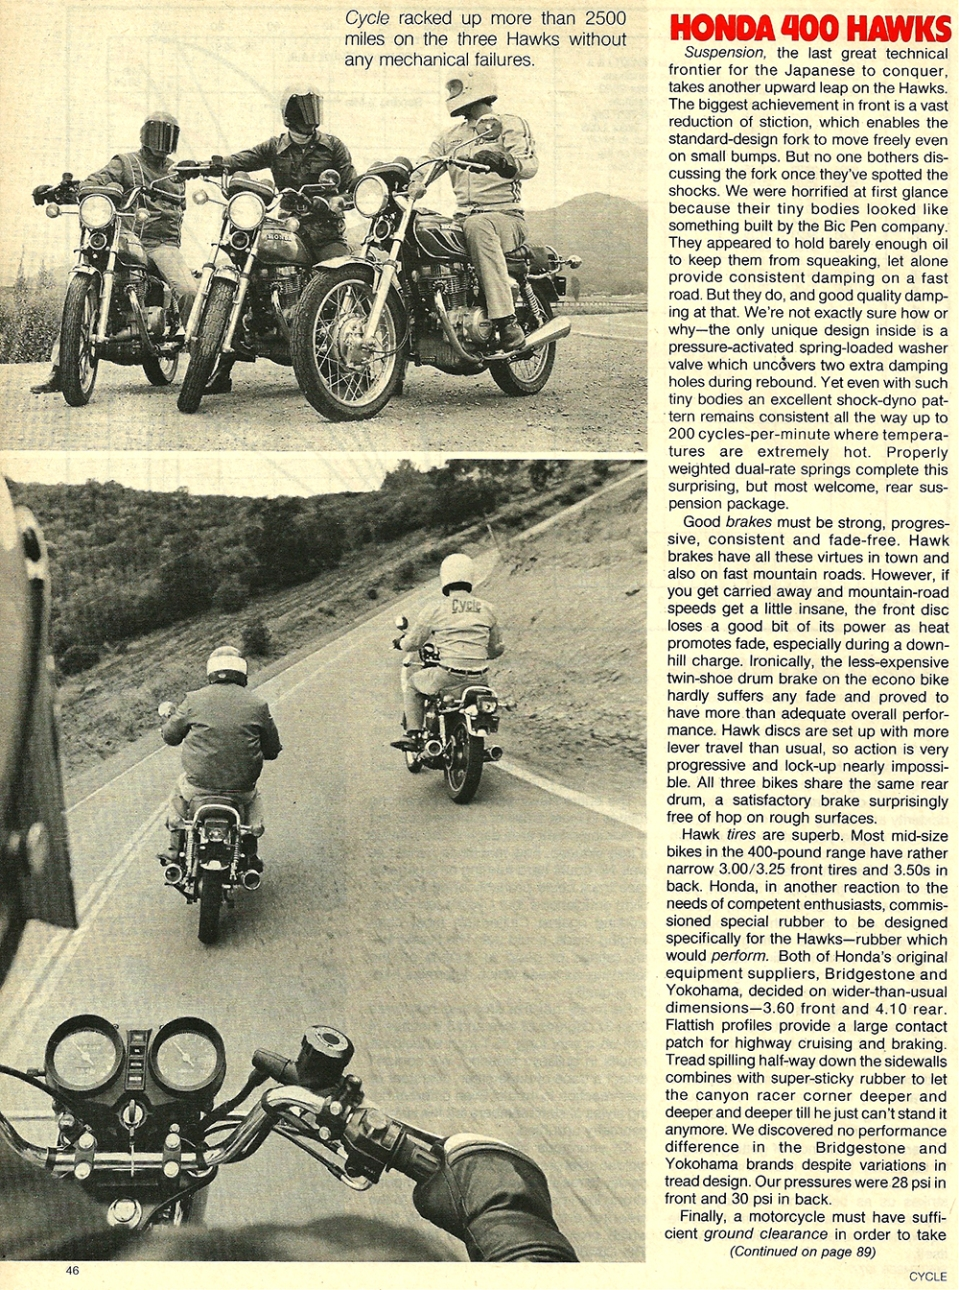 1977-honda-hawk-CB400T-400-road-test-cycle-test-motorcycle-09